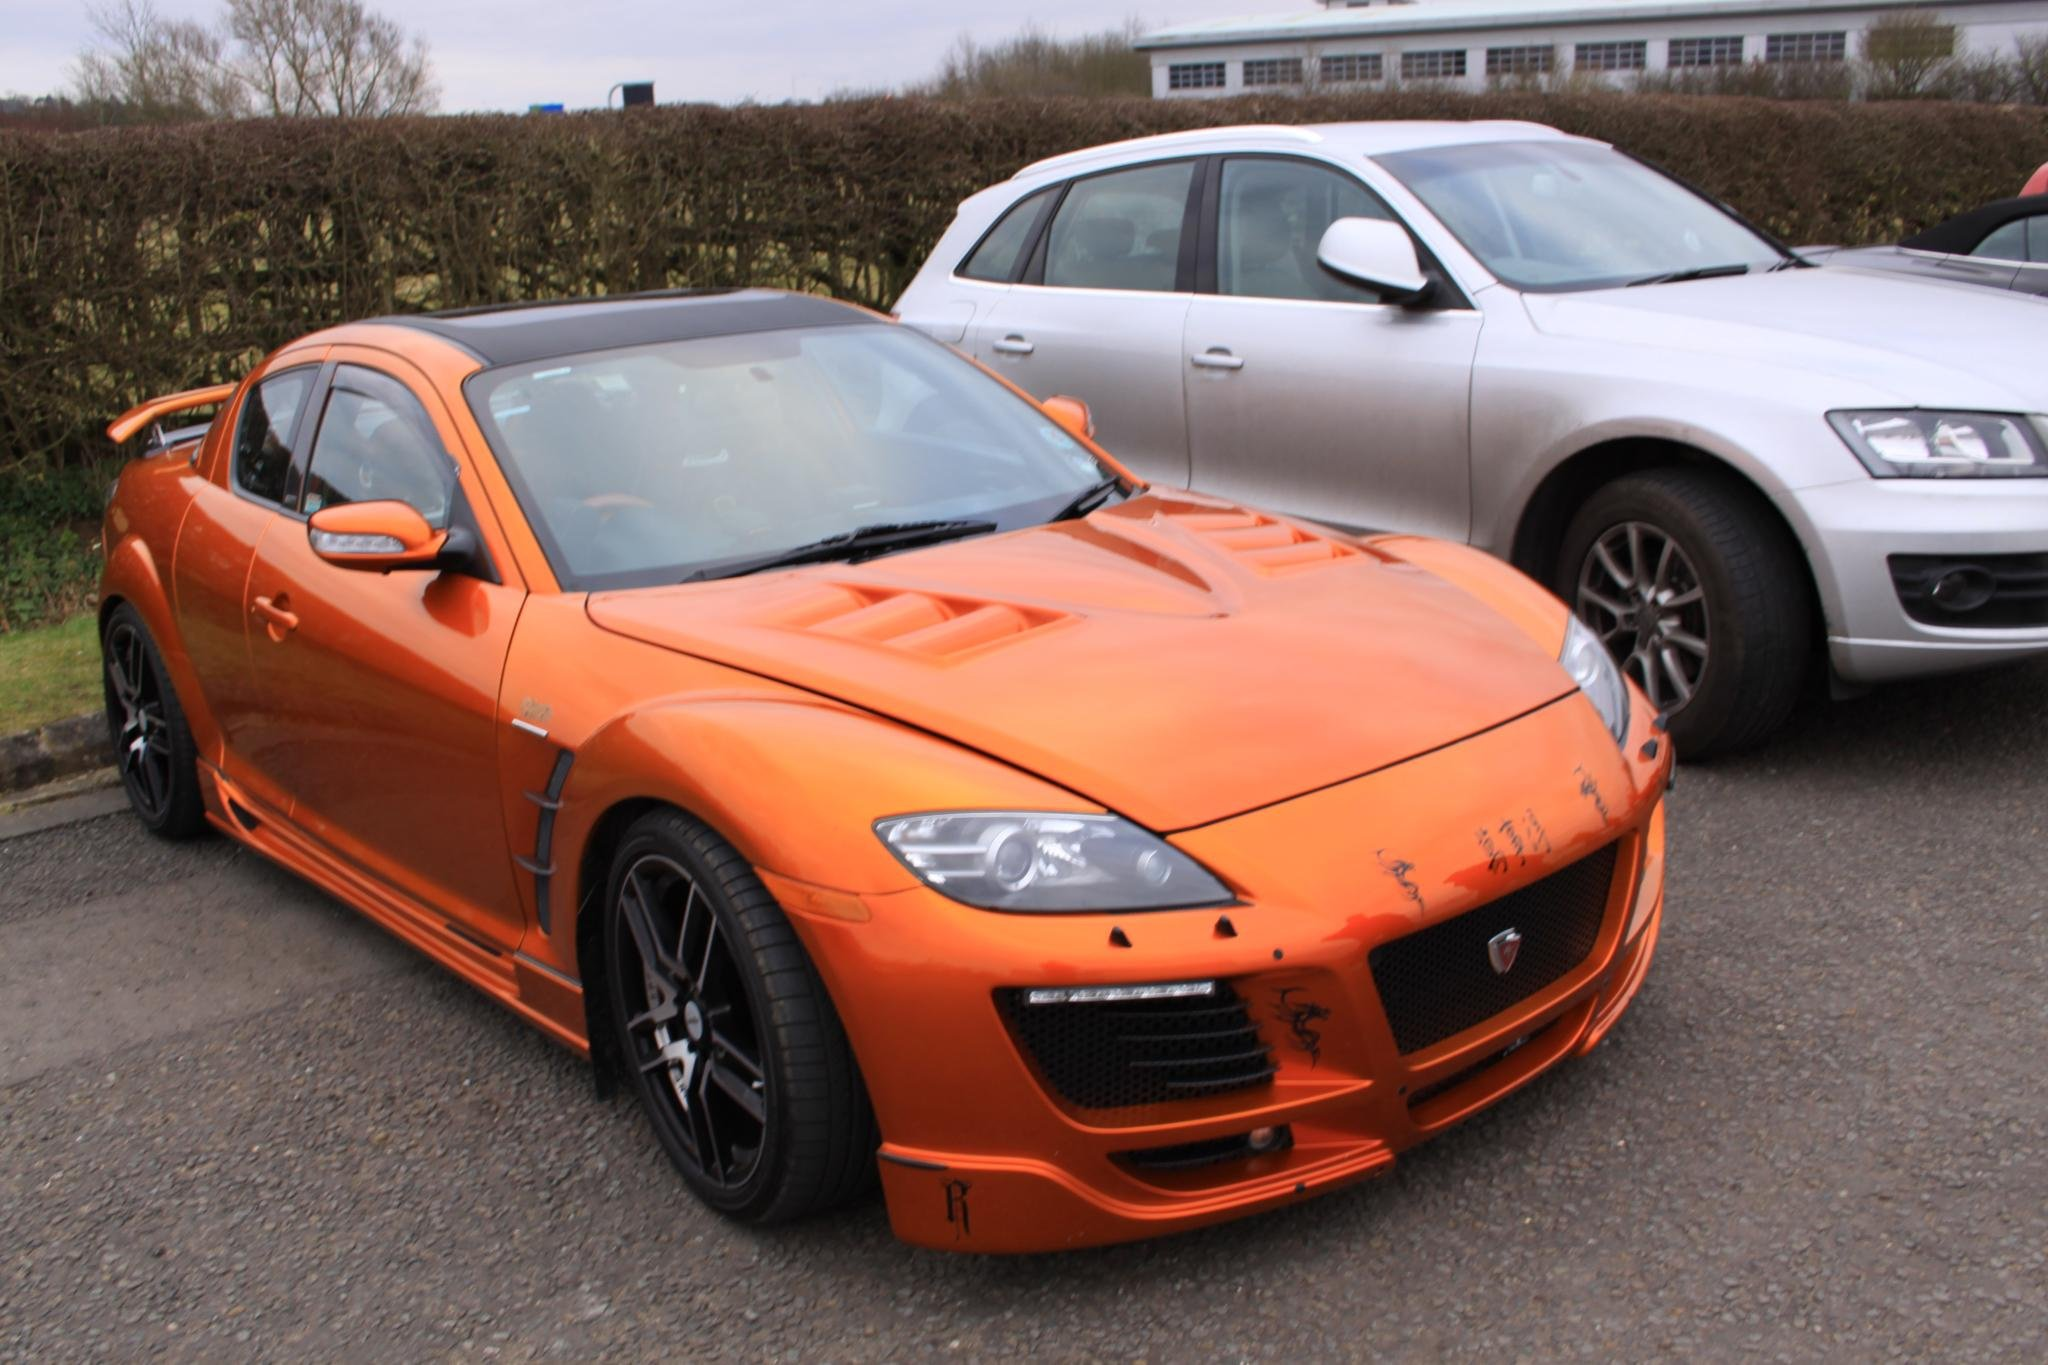 mazda rx8 coupe tuning japan body kit cars wallpaper. Black Bedroom Furniture Sets. Home Design Ideas